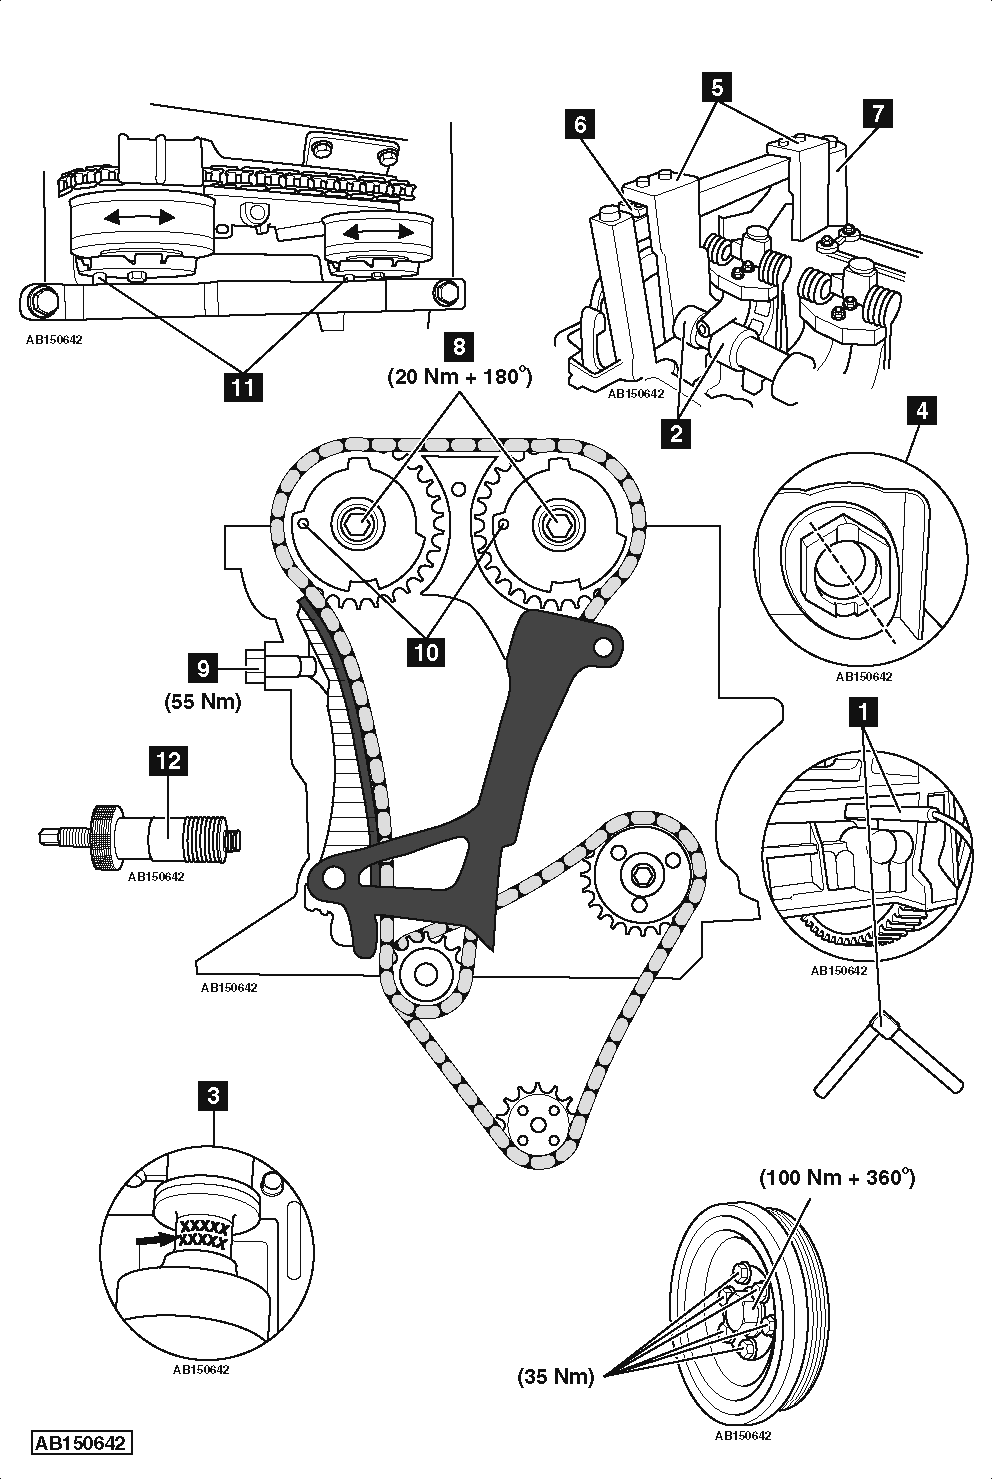 97 Bmw 540i Engine Diagram on bmw x3 parts